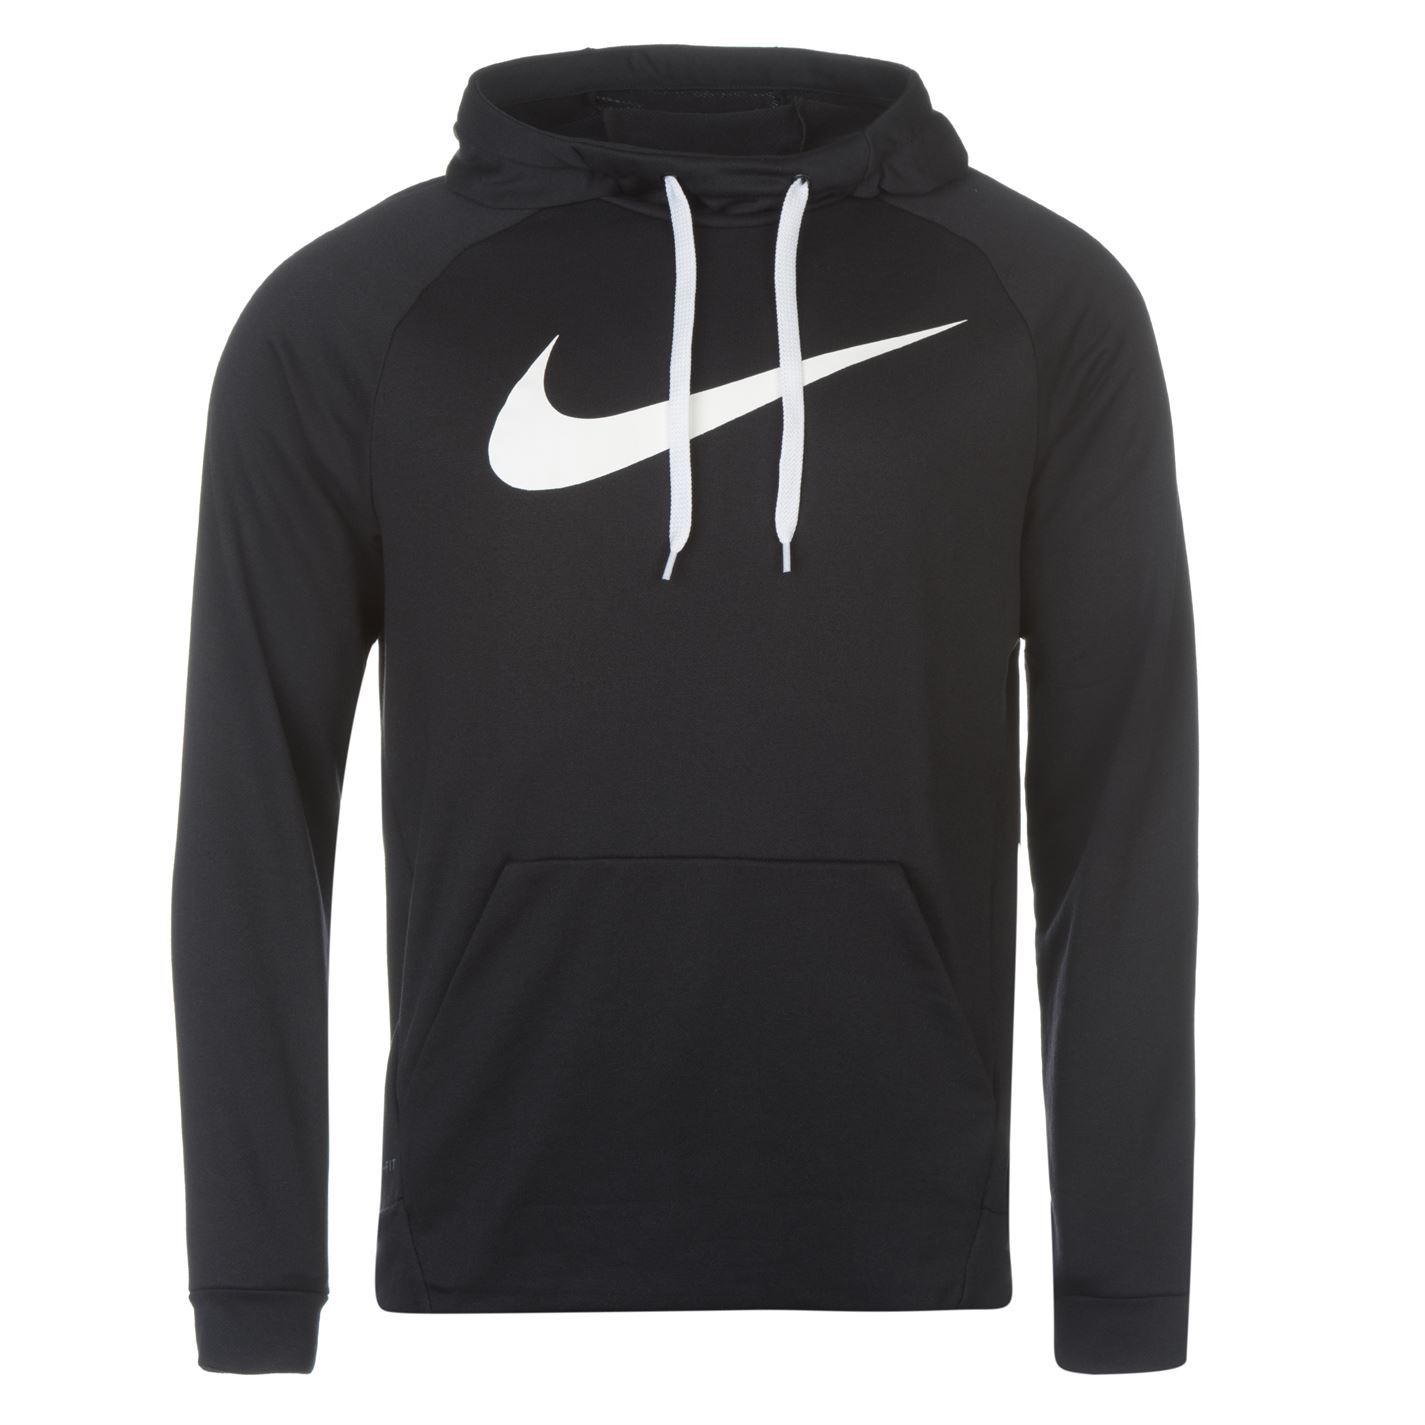 Nike-Dri-Fit-Swoosh-Pullover-Hoody-Mens-OTH-Hoodie-Sweatshirt-Sweater-Hooded-Top thumbnail 5